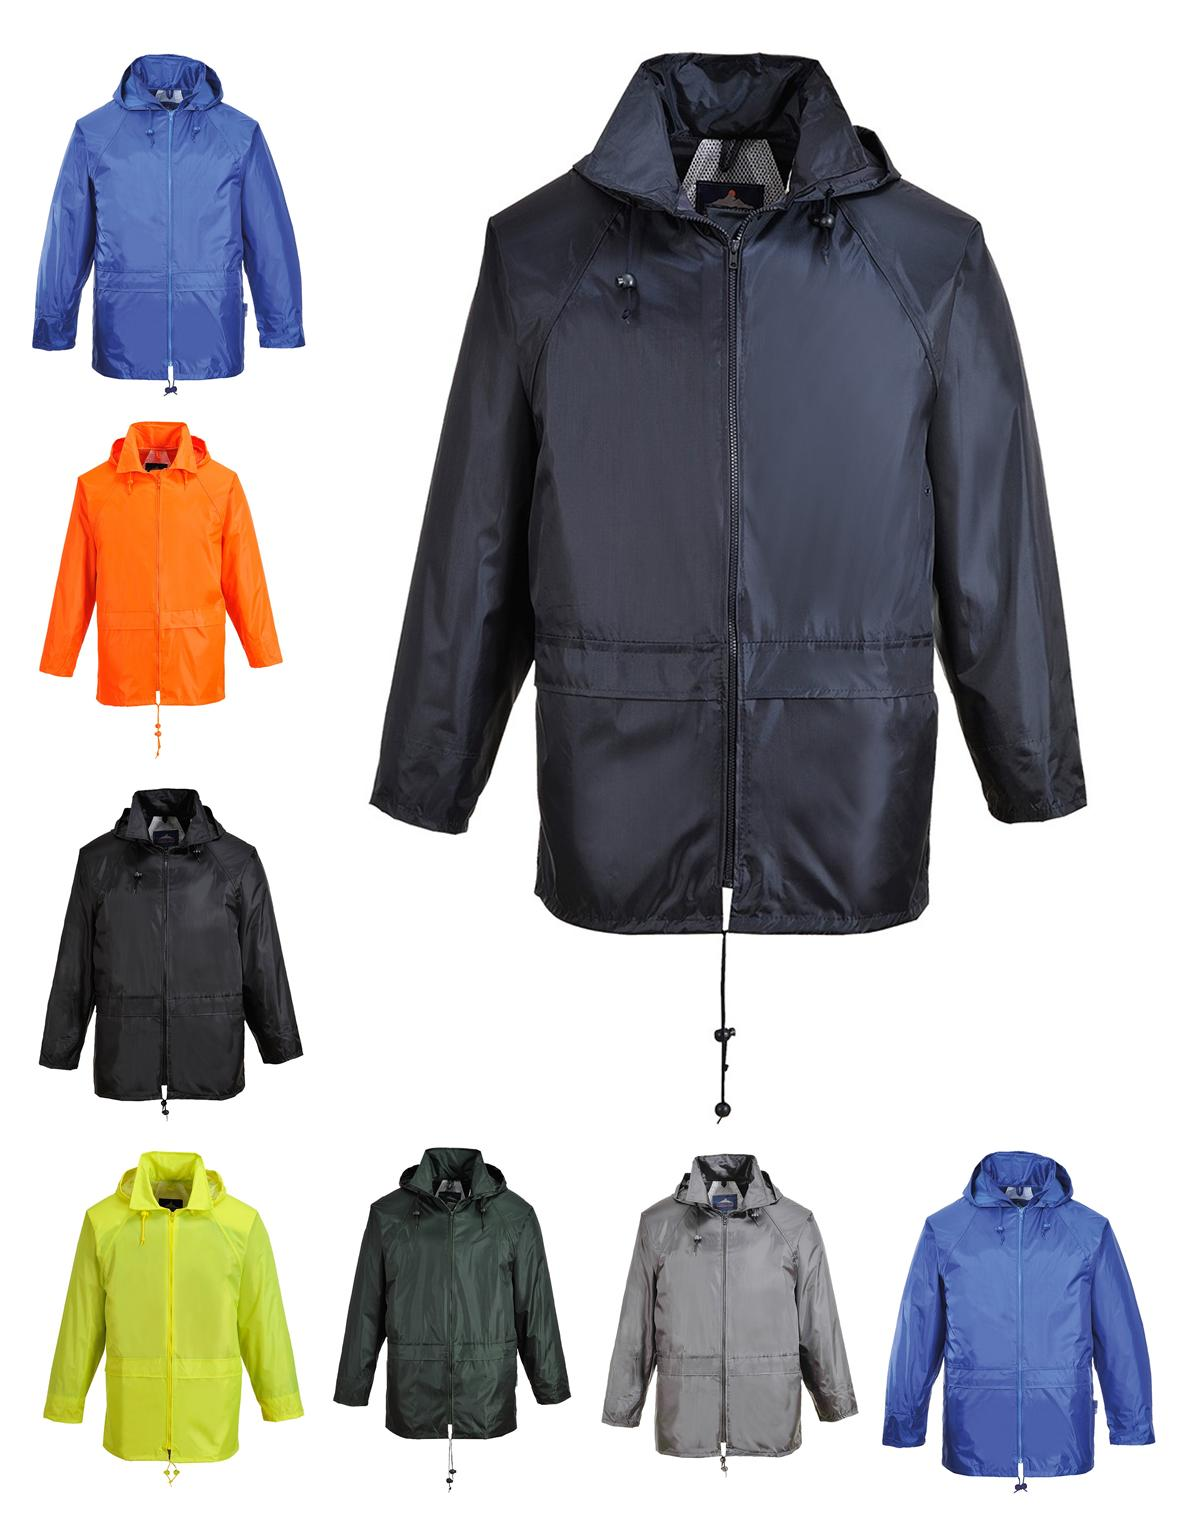 Portwest Classic Rain Jacket Waterproof Hooded Thermal Zippe